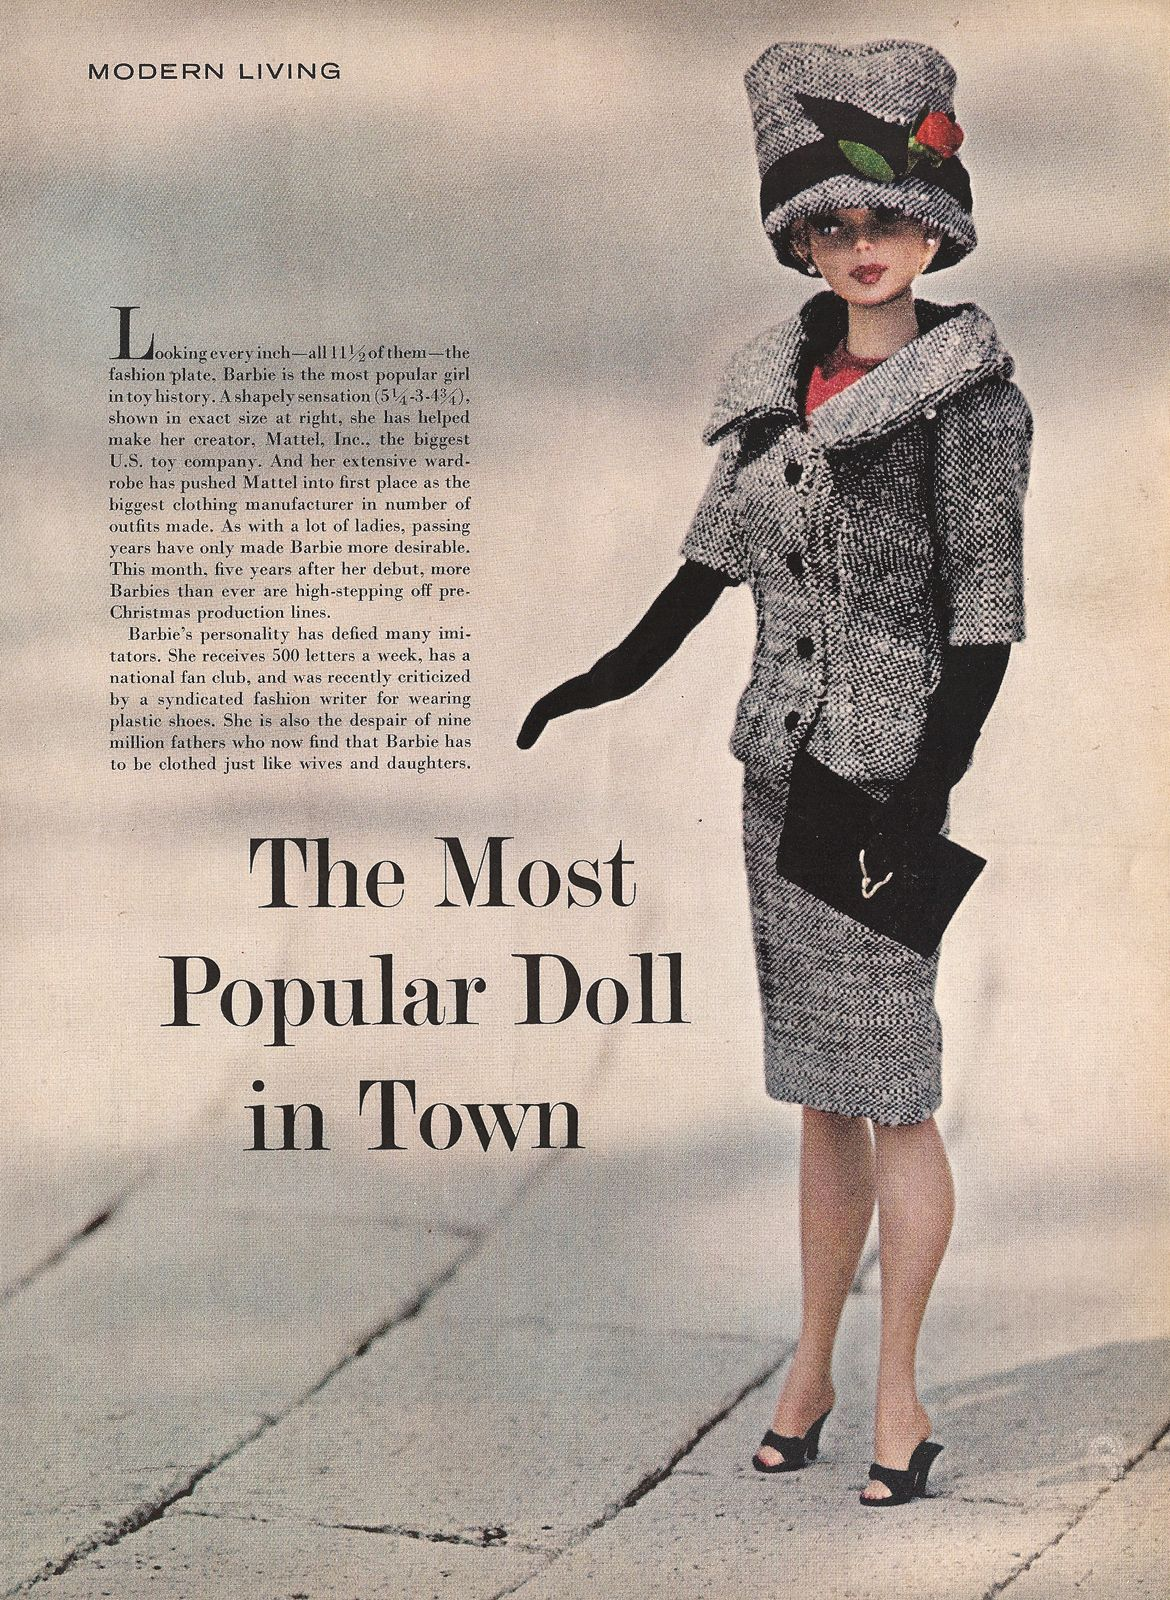 Barbie: The Most Popular Doll in Town ~LIFE, August 23, 1963